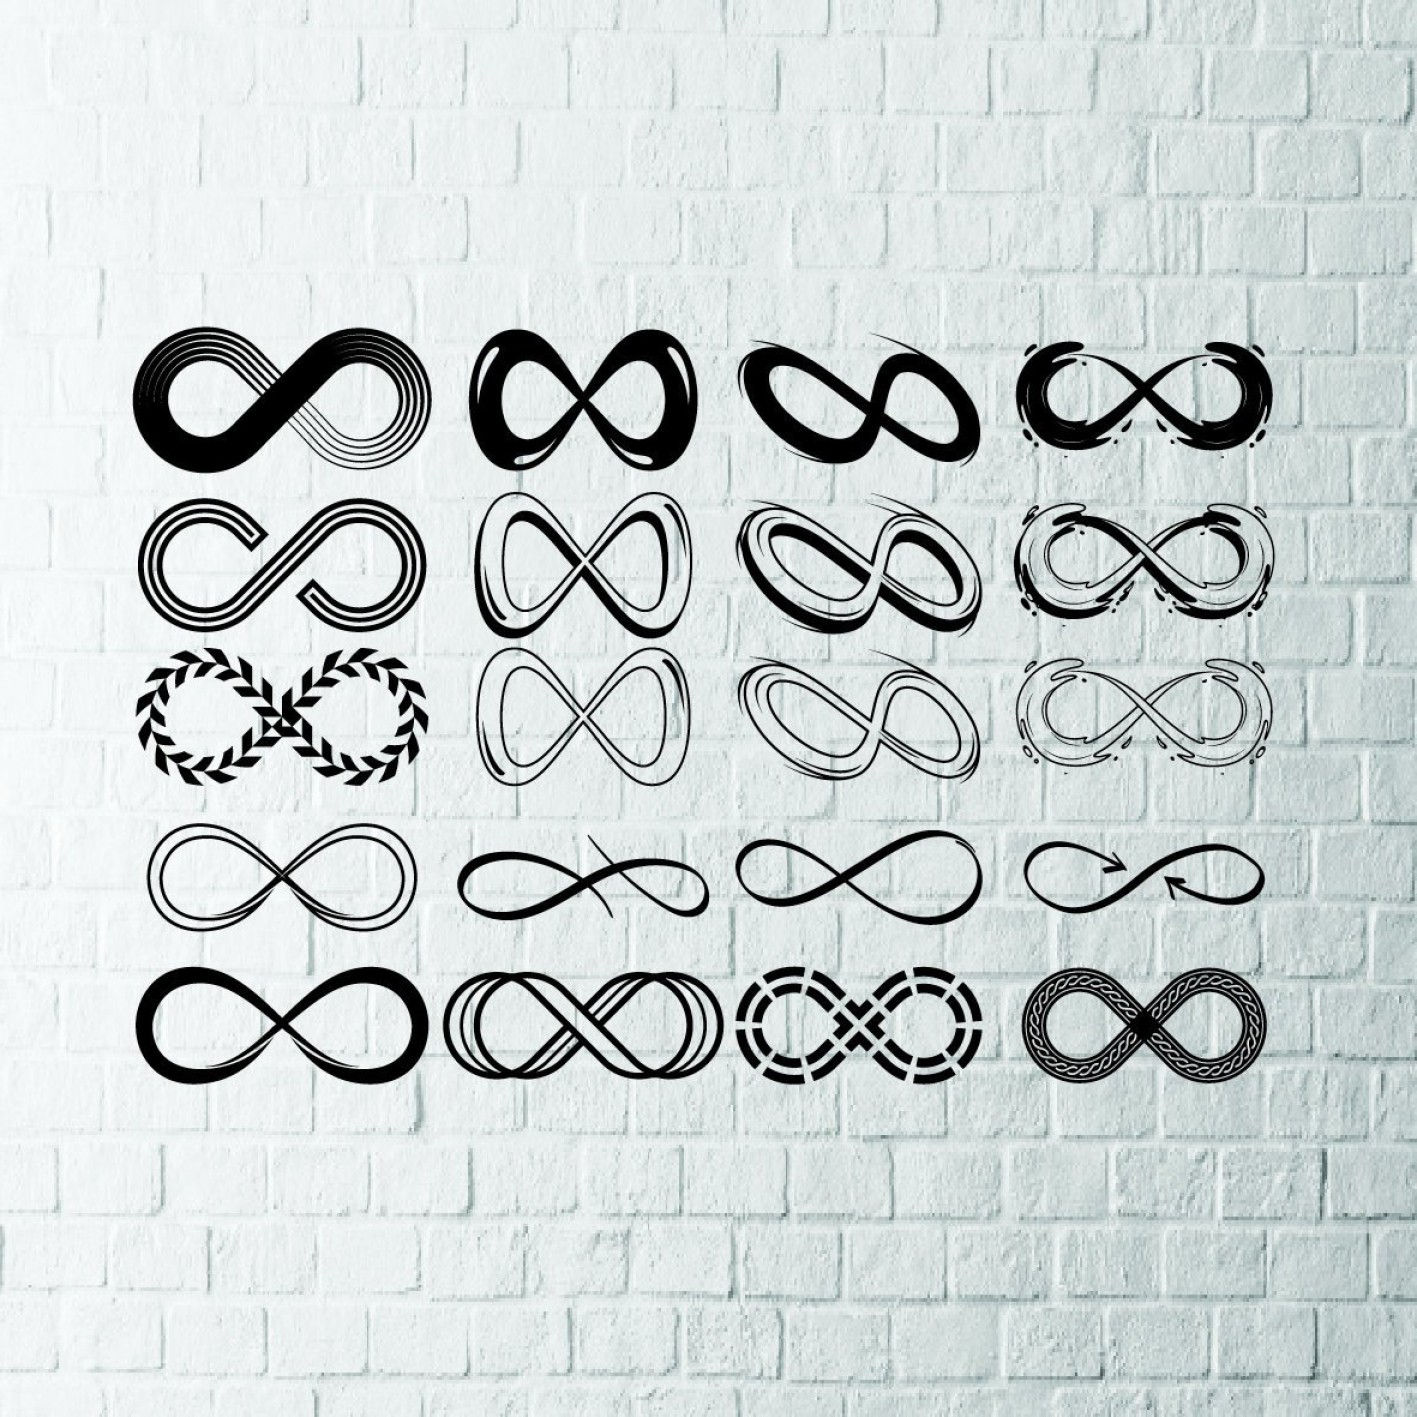 Love Infinity Symbol SVG Vector: Buy Get Free Infinity Sign Svg